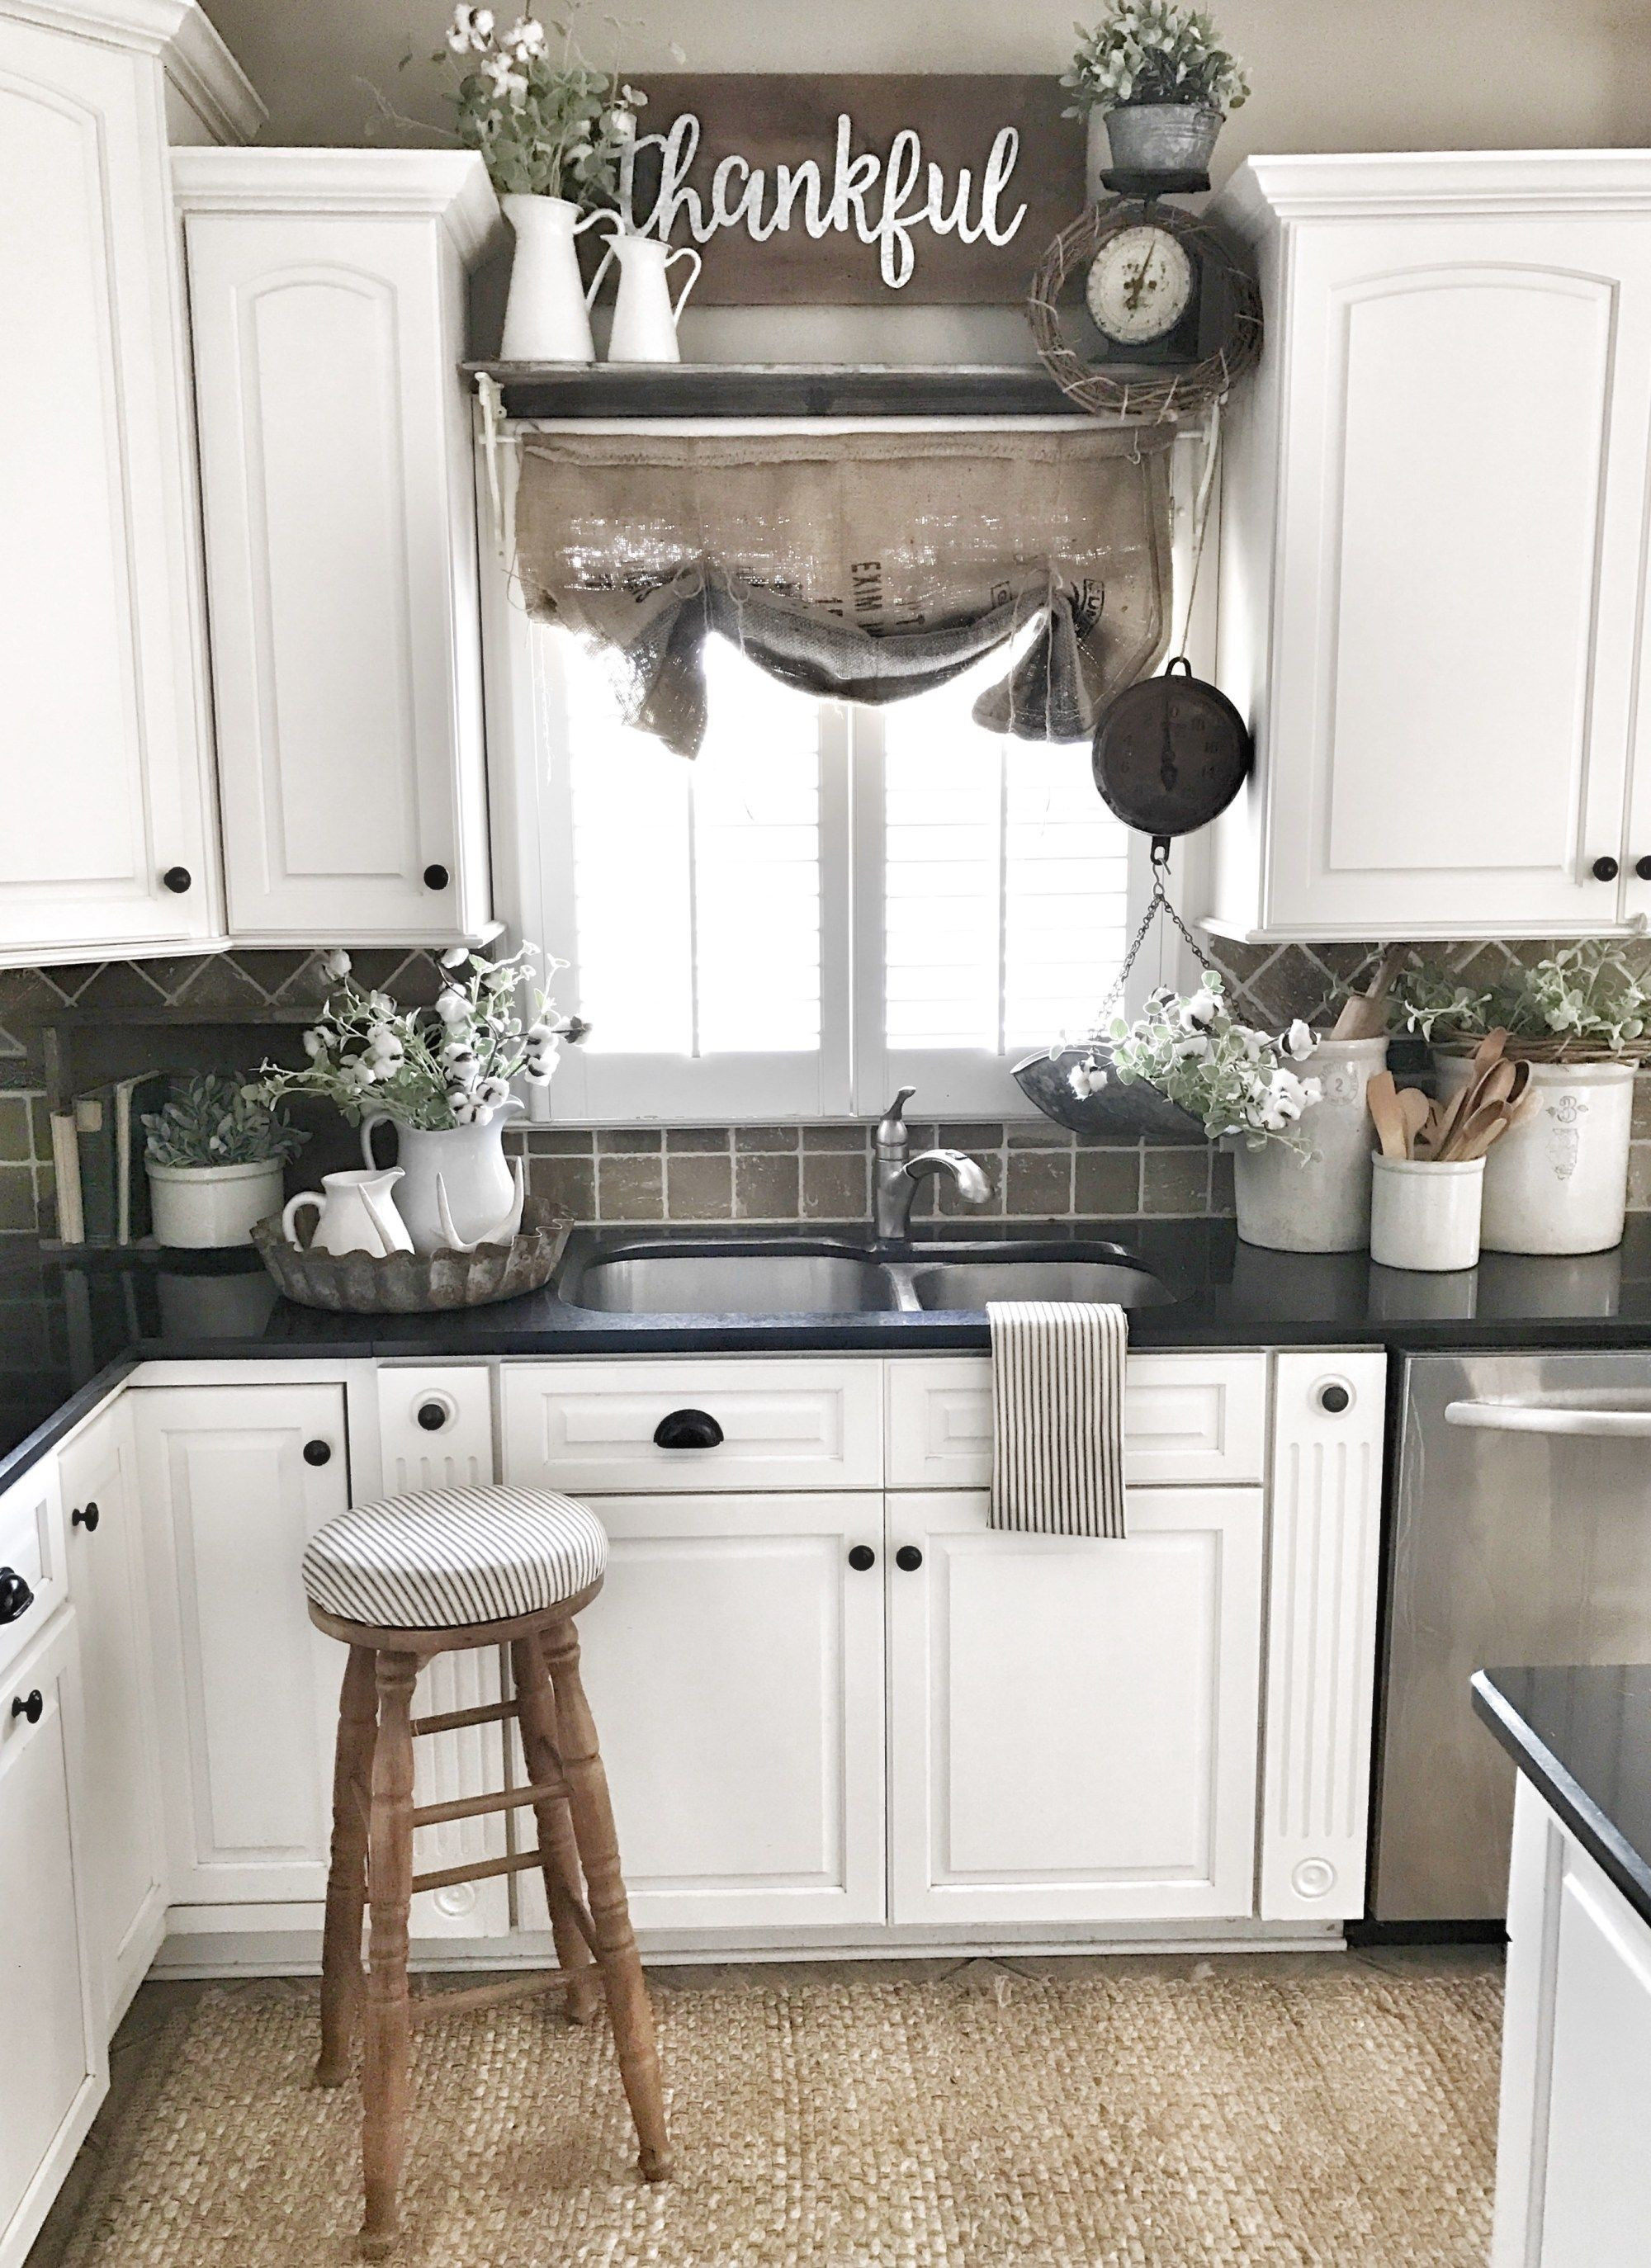 My Kitchen Makeover- Adding Farmhouse To Your Kitchen | Bless This Nest